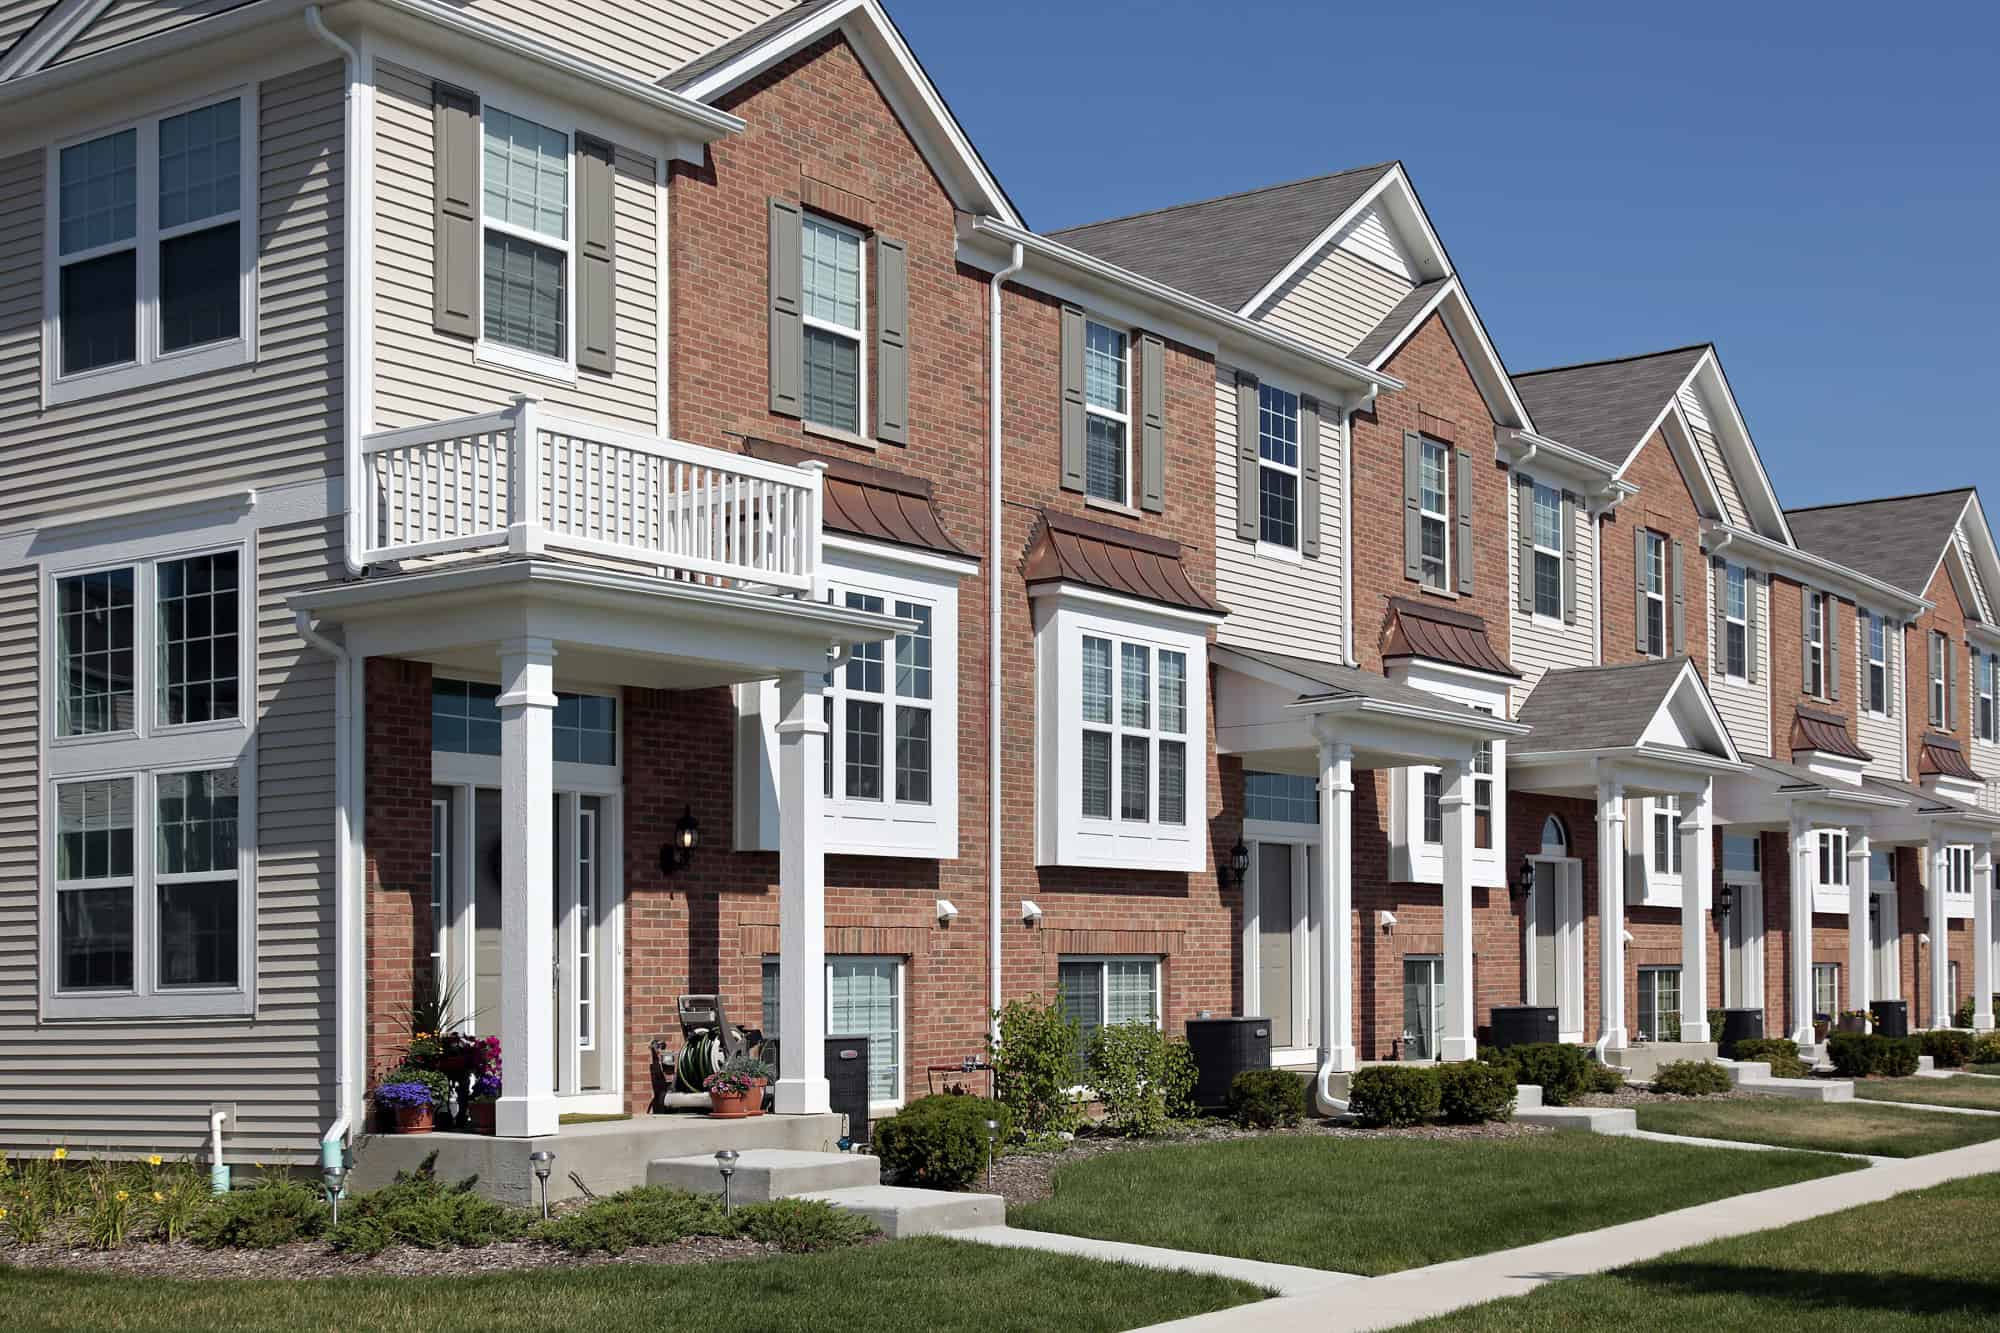 If you are looking at prospects for townhouses, you need to know about your options. Ask these questions before buying a townhouse in North Ridge Rosement, VA.